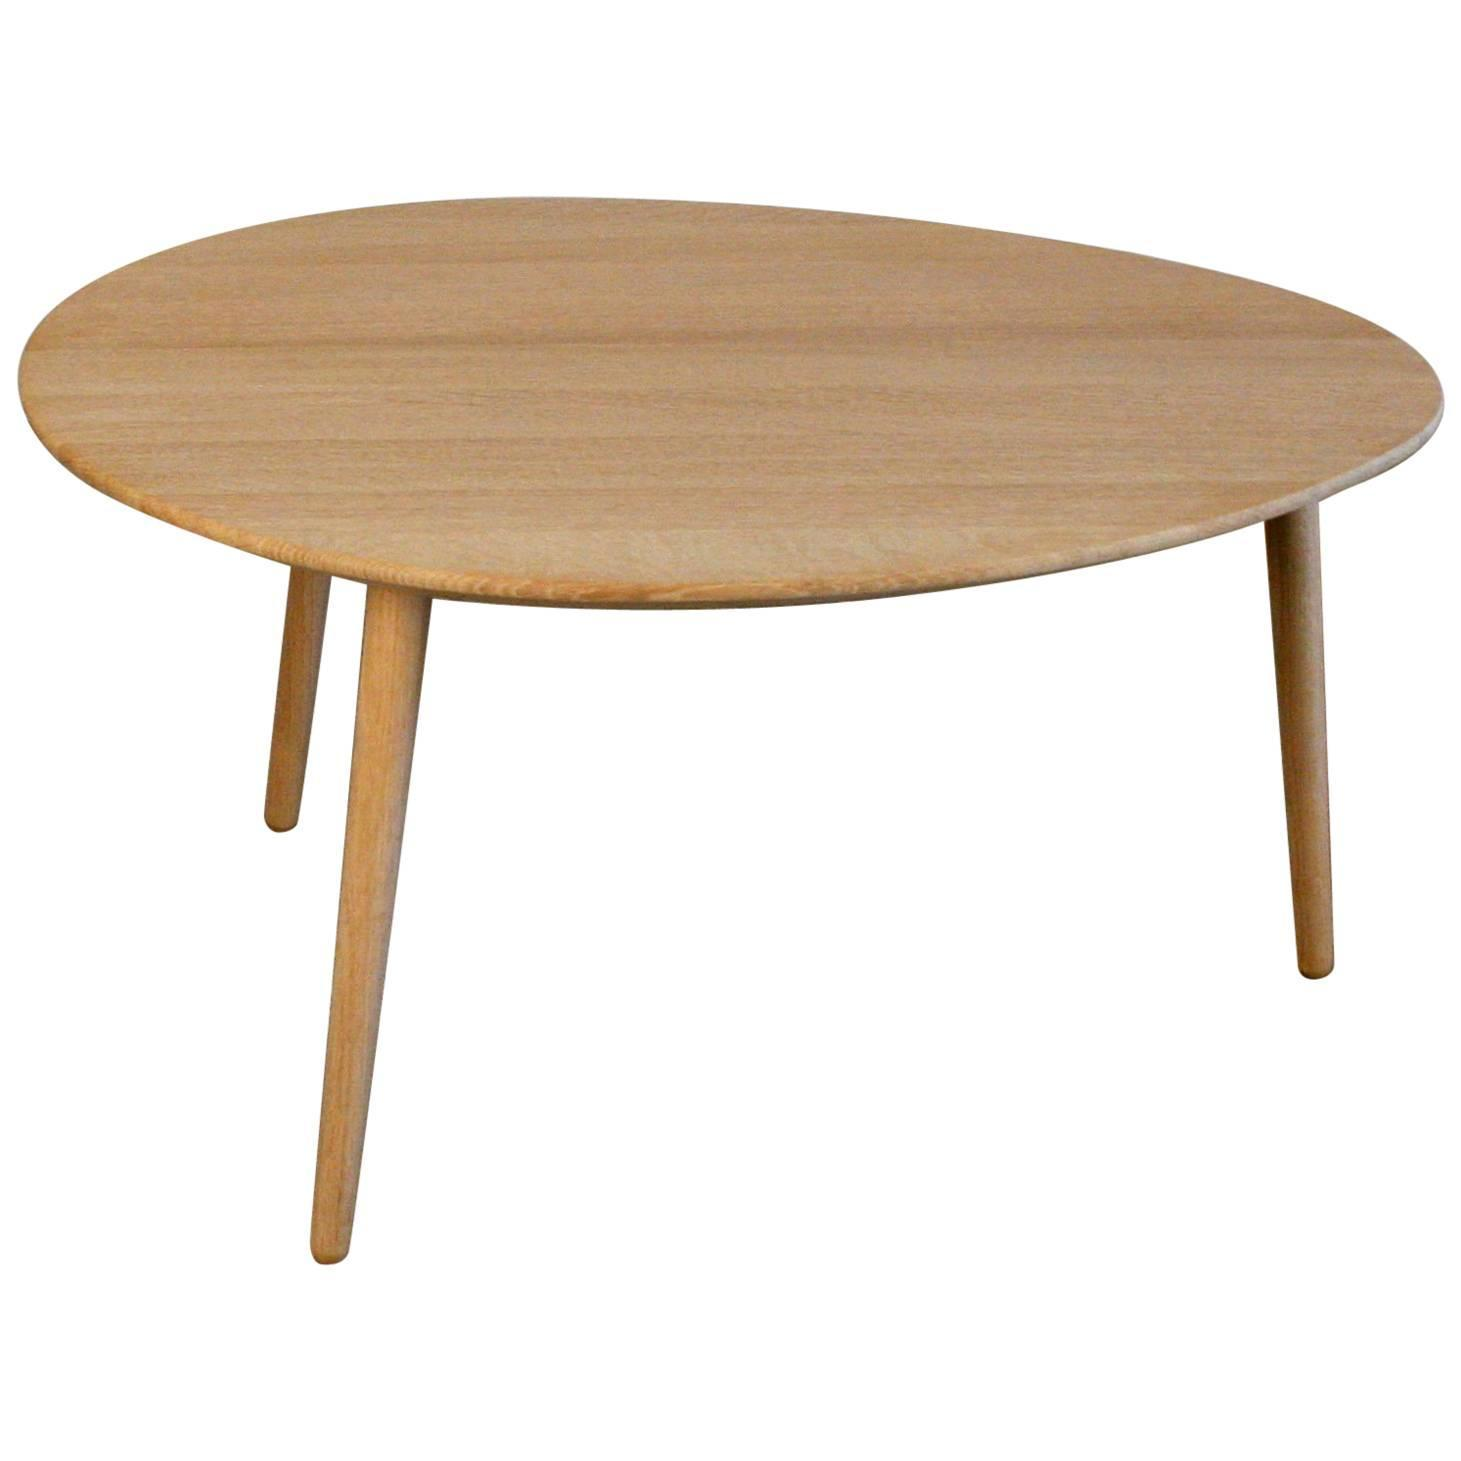 Danish Soaped Oak Egg Shaped Coffee Table at 1stdibs